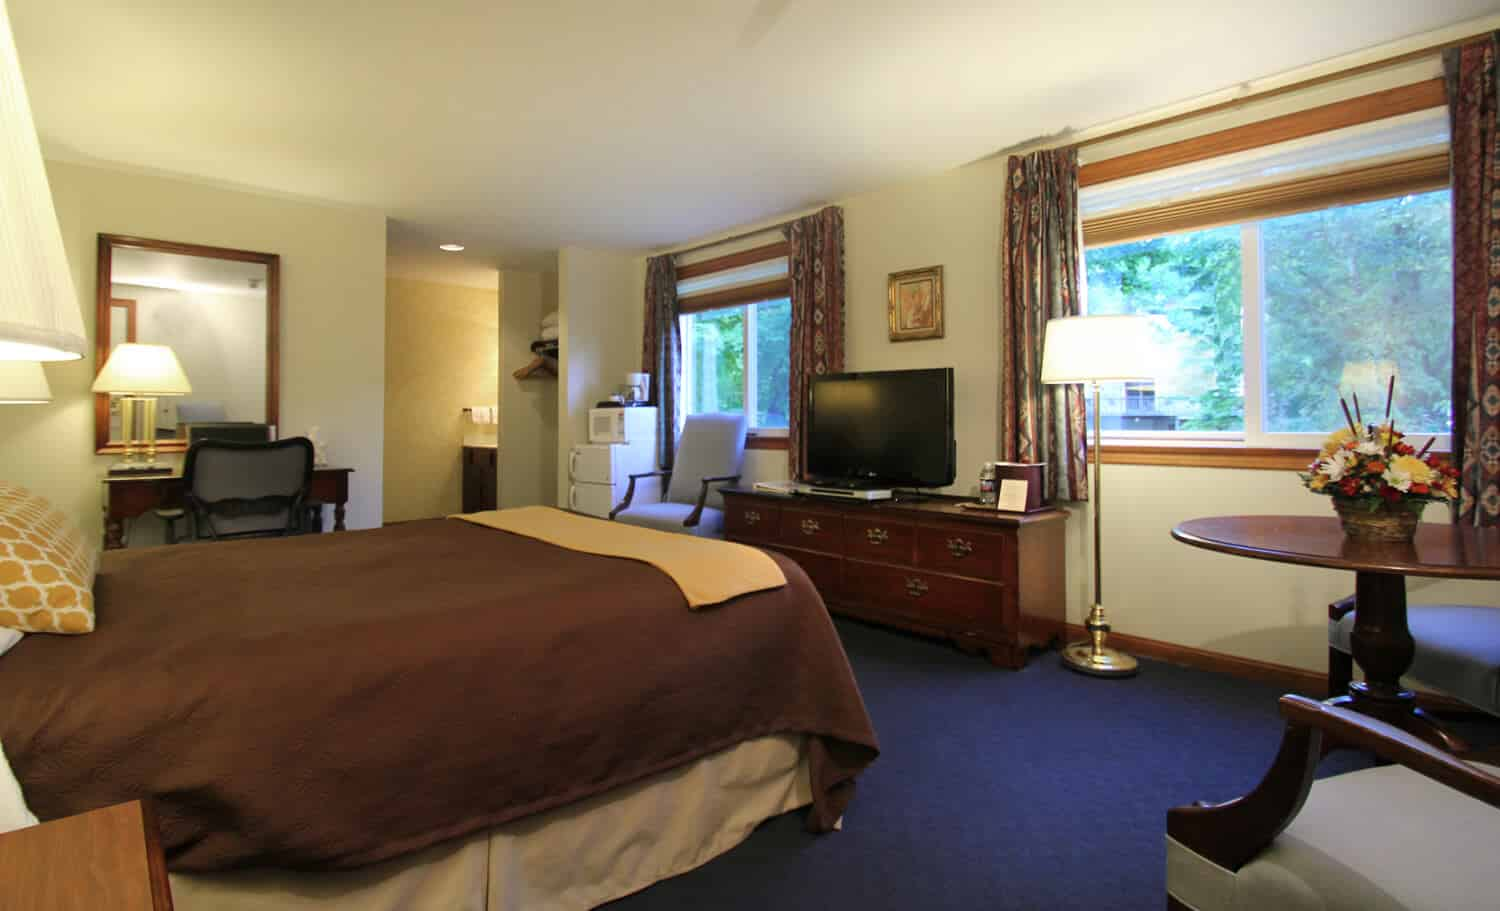 King bedroom with a view overlooking the river features a large table to sit at and a flatscreen TV